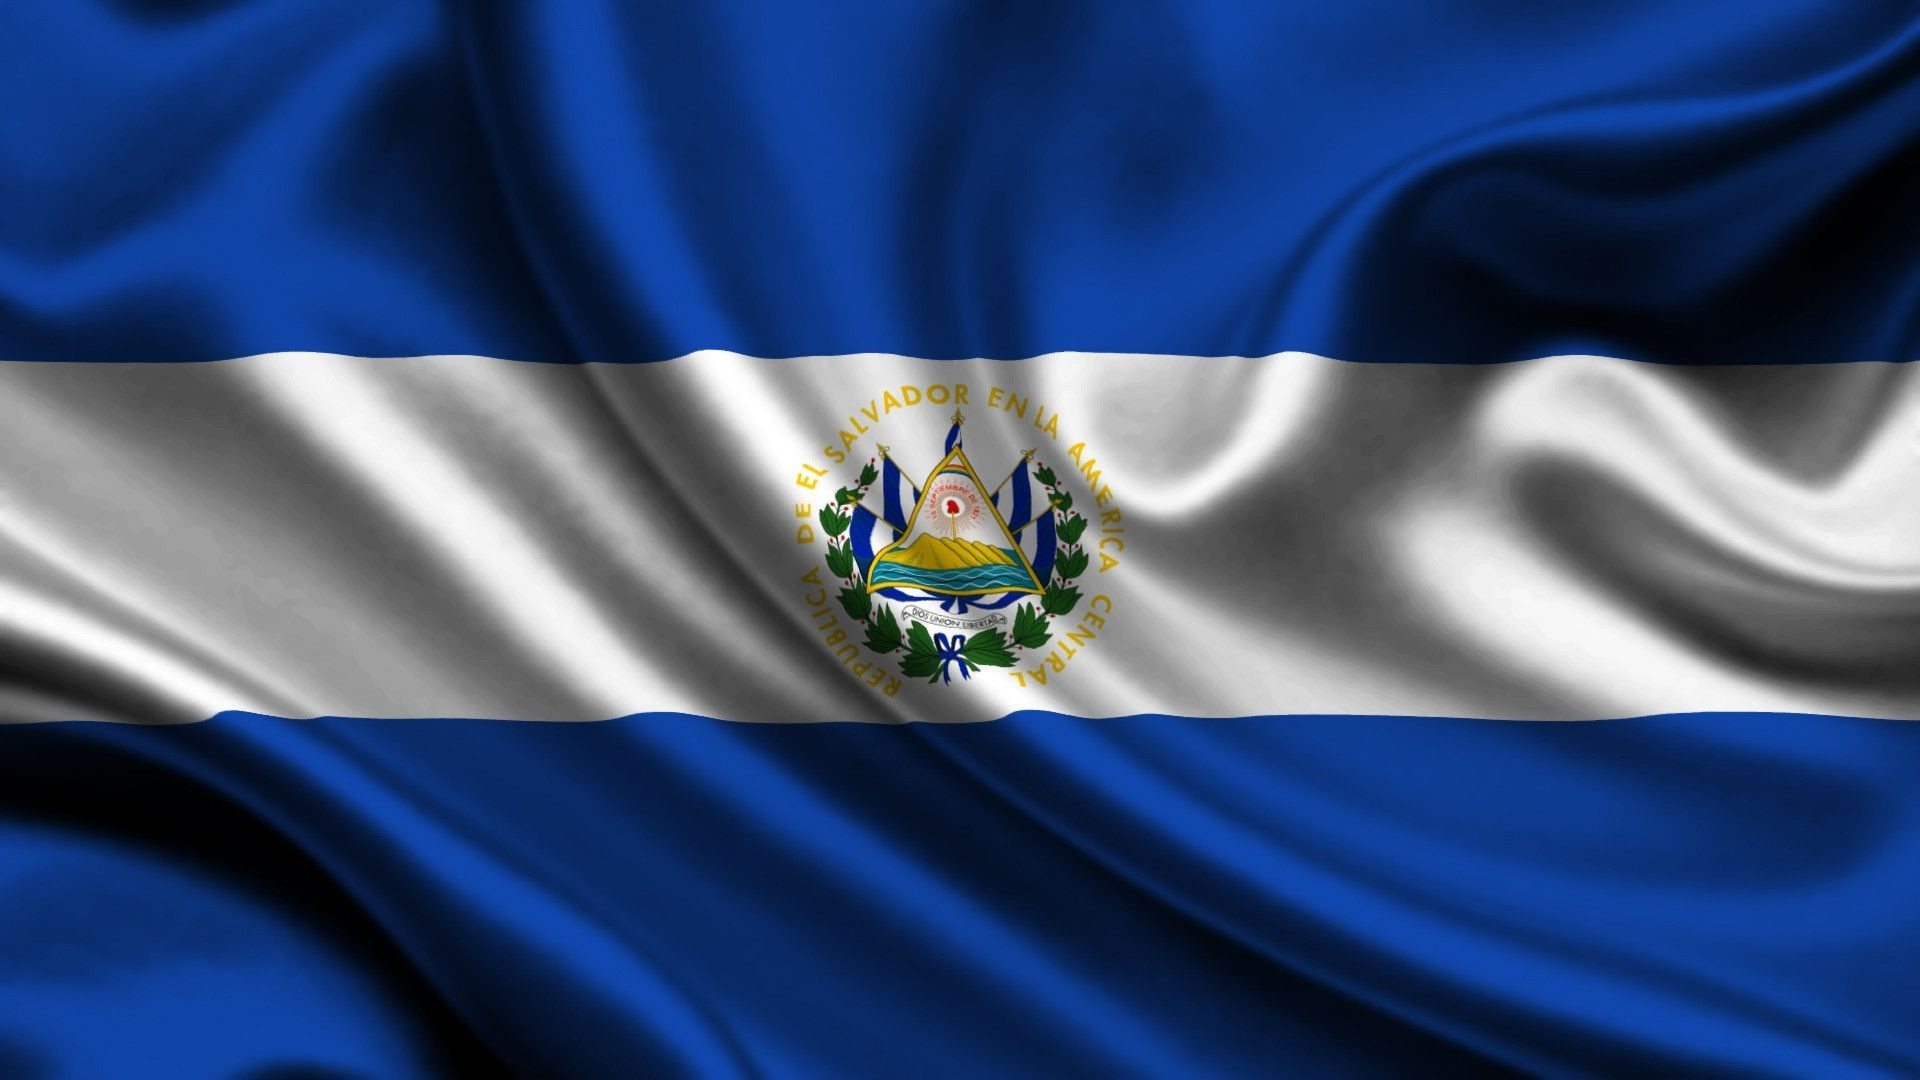 1920x1080 Download